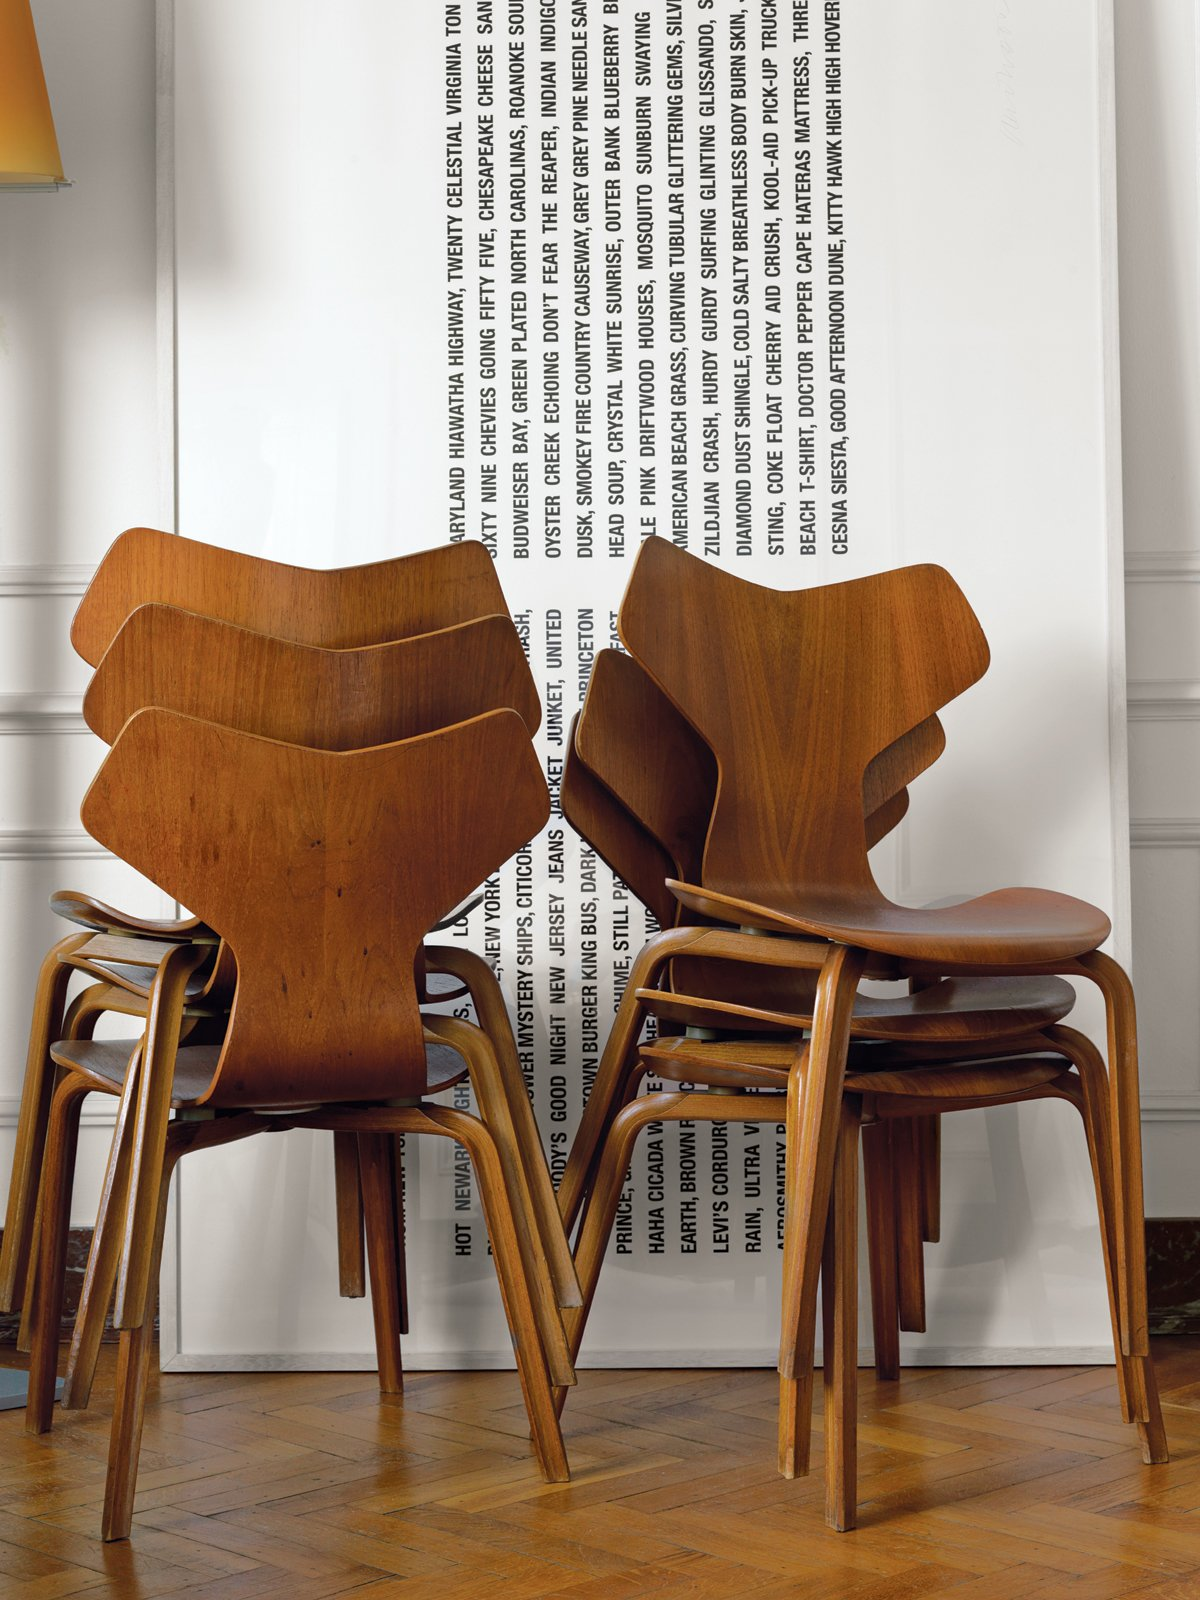 Living Room and Chair A stack of 1955 Grand Prix chairs by Arne Jacobsen rests besides a minimal art piece.  Ways to Decorate with Arne Jacobsen Furniture by Erika Heet from A Neoclassical Gallery Home in Belgium